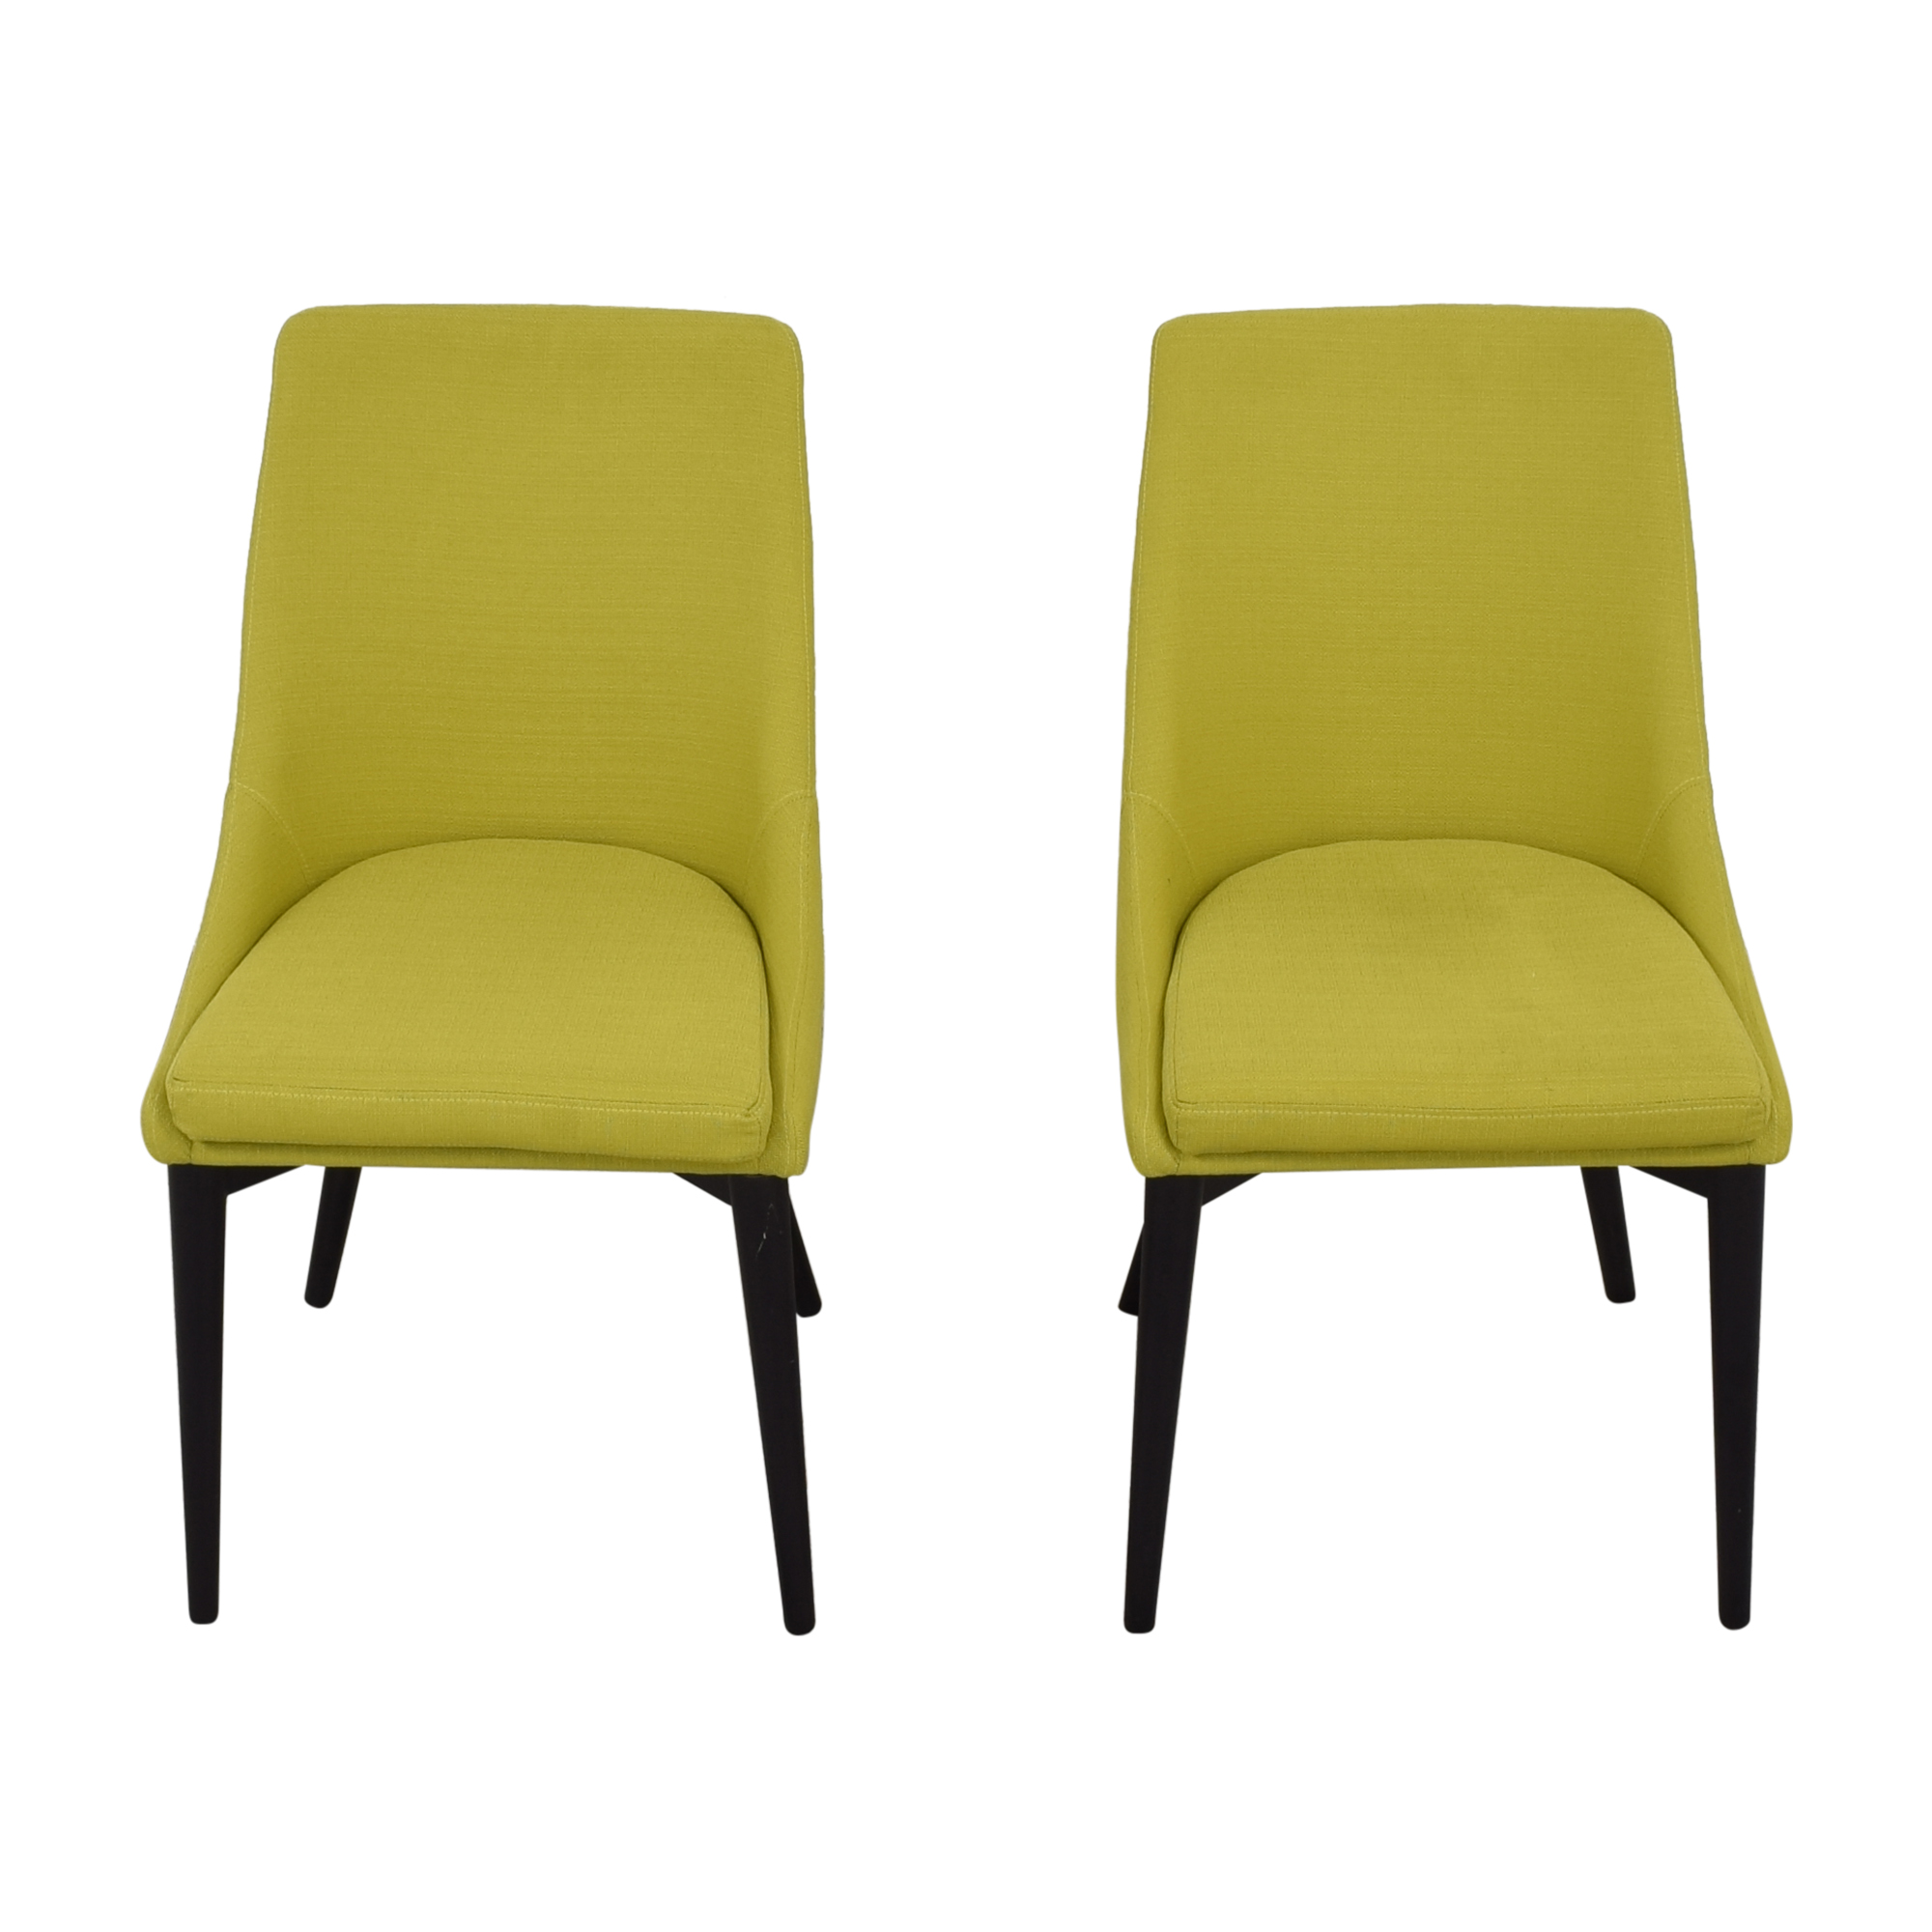 shop Modway Viscount Dining Chairs Modway Dining Chairs